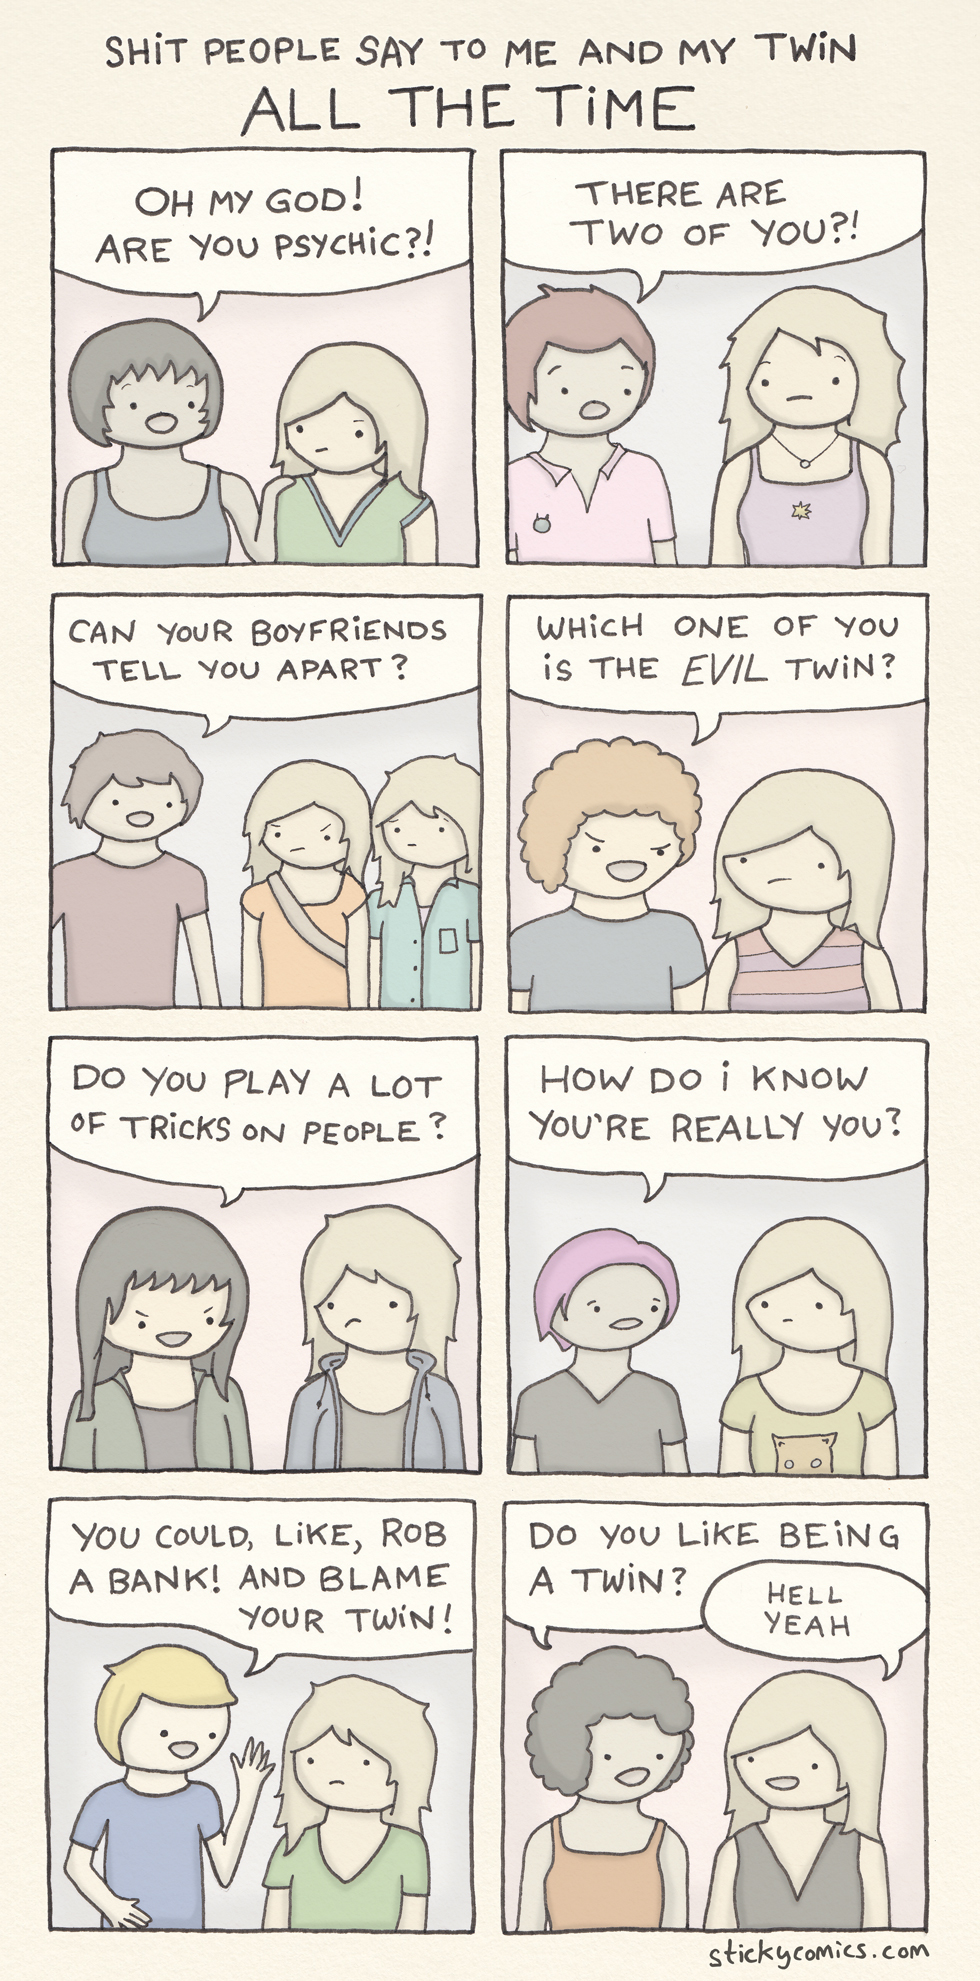 Here are some things people say to me and my twin all the time. But yeah, twins are magic.